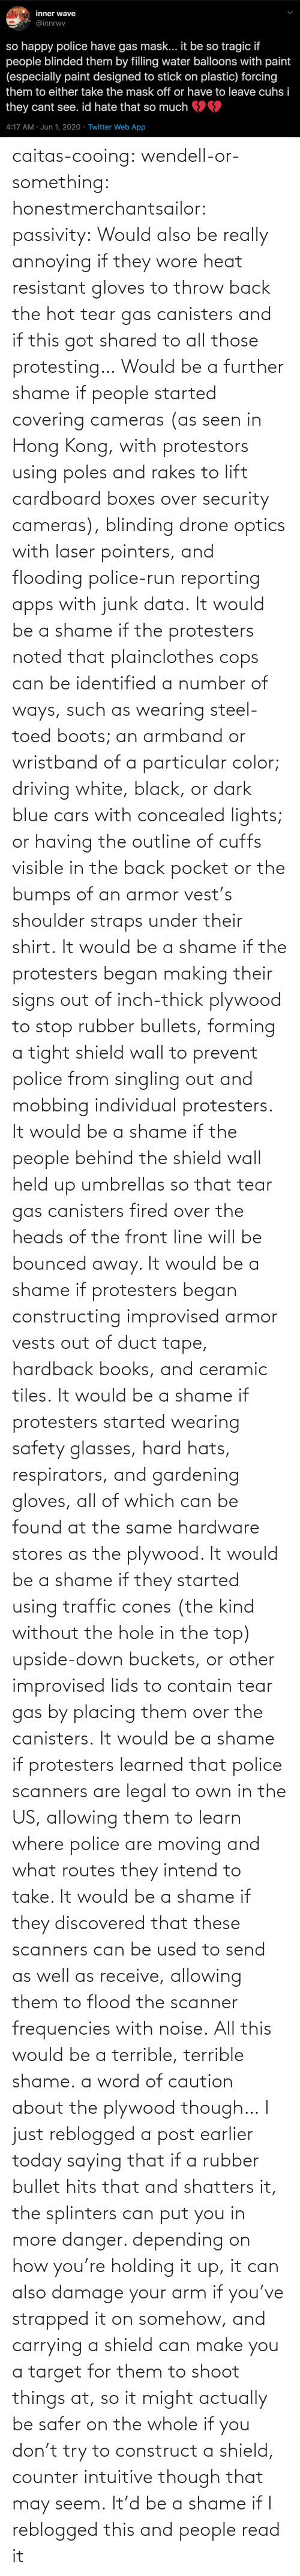 Shared: caitas-cooing:  wendell-or-something: honestmerchantsailor:  passivity: Would also be really annoying if they wore heat resistant gloves to throw back the hot tear gas canisters and if this got shared to all those protesting… Would be a further shame if people started covering cameras (as seen in Hong Kong, with protestors using poles and rakes to lift cardboard boxes over security cameras), blinding drone optics with laser pointers, and flooding police-run reporting apps with junk data. It would be a shame if the protesters noted that plainclothes cops can be identified a number of ways, such as wearing steel-toed boots; an armband or wristband of a particular color; driving white, black, or dark blue cars with concealed lights; or having the outline of cuffs visible in the back pocket or the bumps of an armor vest's shoulder straps under their shirt. It would be a shame if the protesters began making their signs out of inch-thick plywood to stop rubber bullets, forming a tight shield wall to prevent police from singling out and mobbing individual protesters. It would be a shame if the people behind the shield wall held up umbrellas so that tear gas canisters fired over the heads of the front line will be bounced away. It would be a shame if protesters began constructing improvised armor vests out of duct tape, hardback books, and ceramic tiles. It would be a shame if protesters started wearing safety glasses, hard hats, respirators, and gardening gloves, all of which can be found at the same hardware stores as the plywood. It would be a shame if they started using traffic cones (the kind without the hole in the top) upside-down buckets, or other improvised lids to contain tear gas by placing them over the canisters. It would be a shame if protesters learned that police scanners are legal to own in the US, allowing them to learn where police are moving and what routes they intend to take. It would be a shame if they discovered that these scanners can be used to send as well as receive, allowing them to flood the scanner frequencies with noise. All this would be a terrible, terrible shame.    a word of caution about the plywood though… I just reblogged a post earlier today saying that if a rubber bullet hits that and shatters it, the splinters can put you in more danger. depending on how you're holding it up, it can also damage your arm if you've strapped it on somehow, and carrying a shield can make you a target for them to shoot things at, so it might actually be safer on the whole if you don't try to construct a shield, counter intuitive though that may seem.    It'd be a shame if I reblogged this and people read it